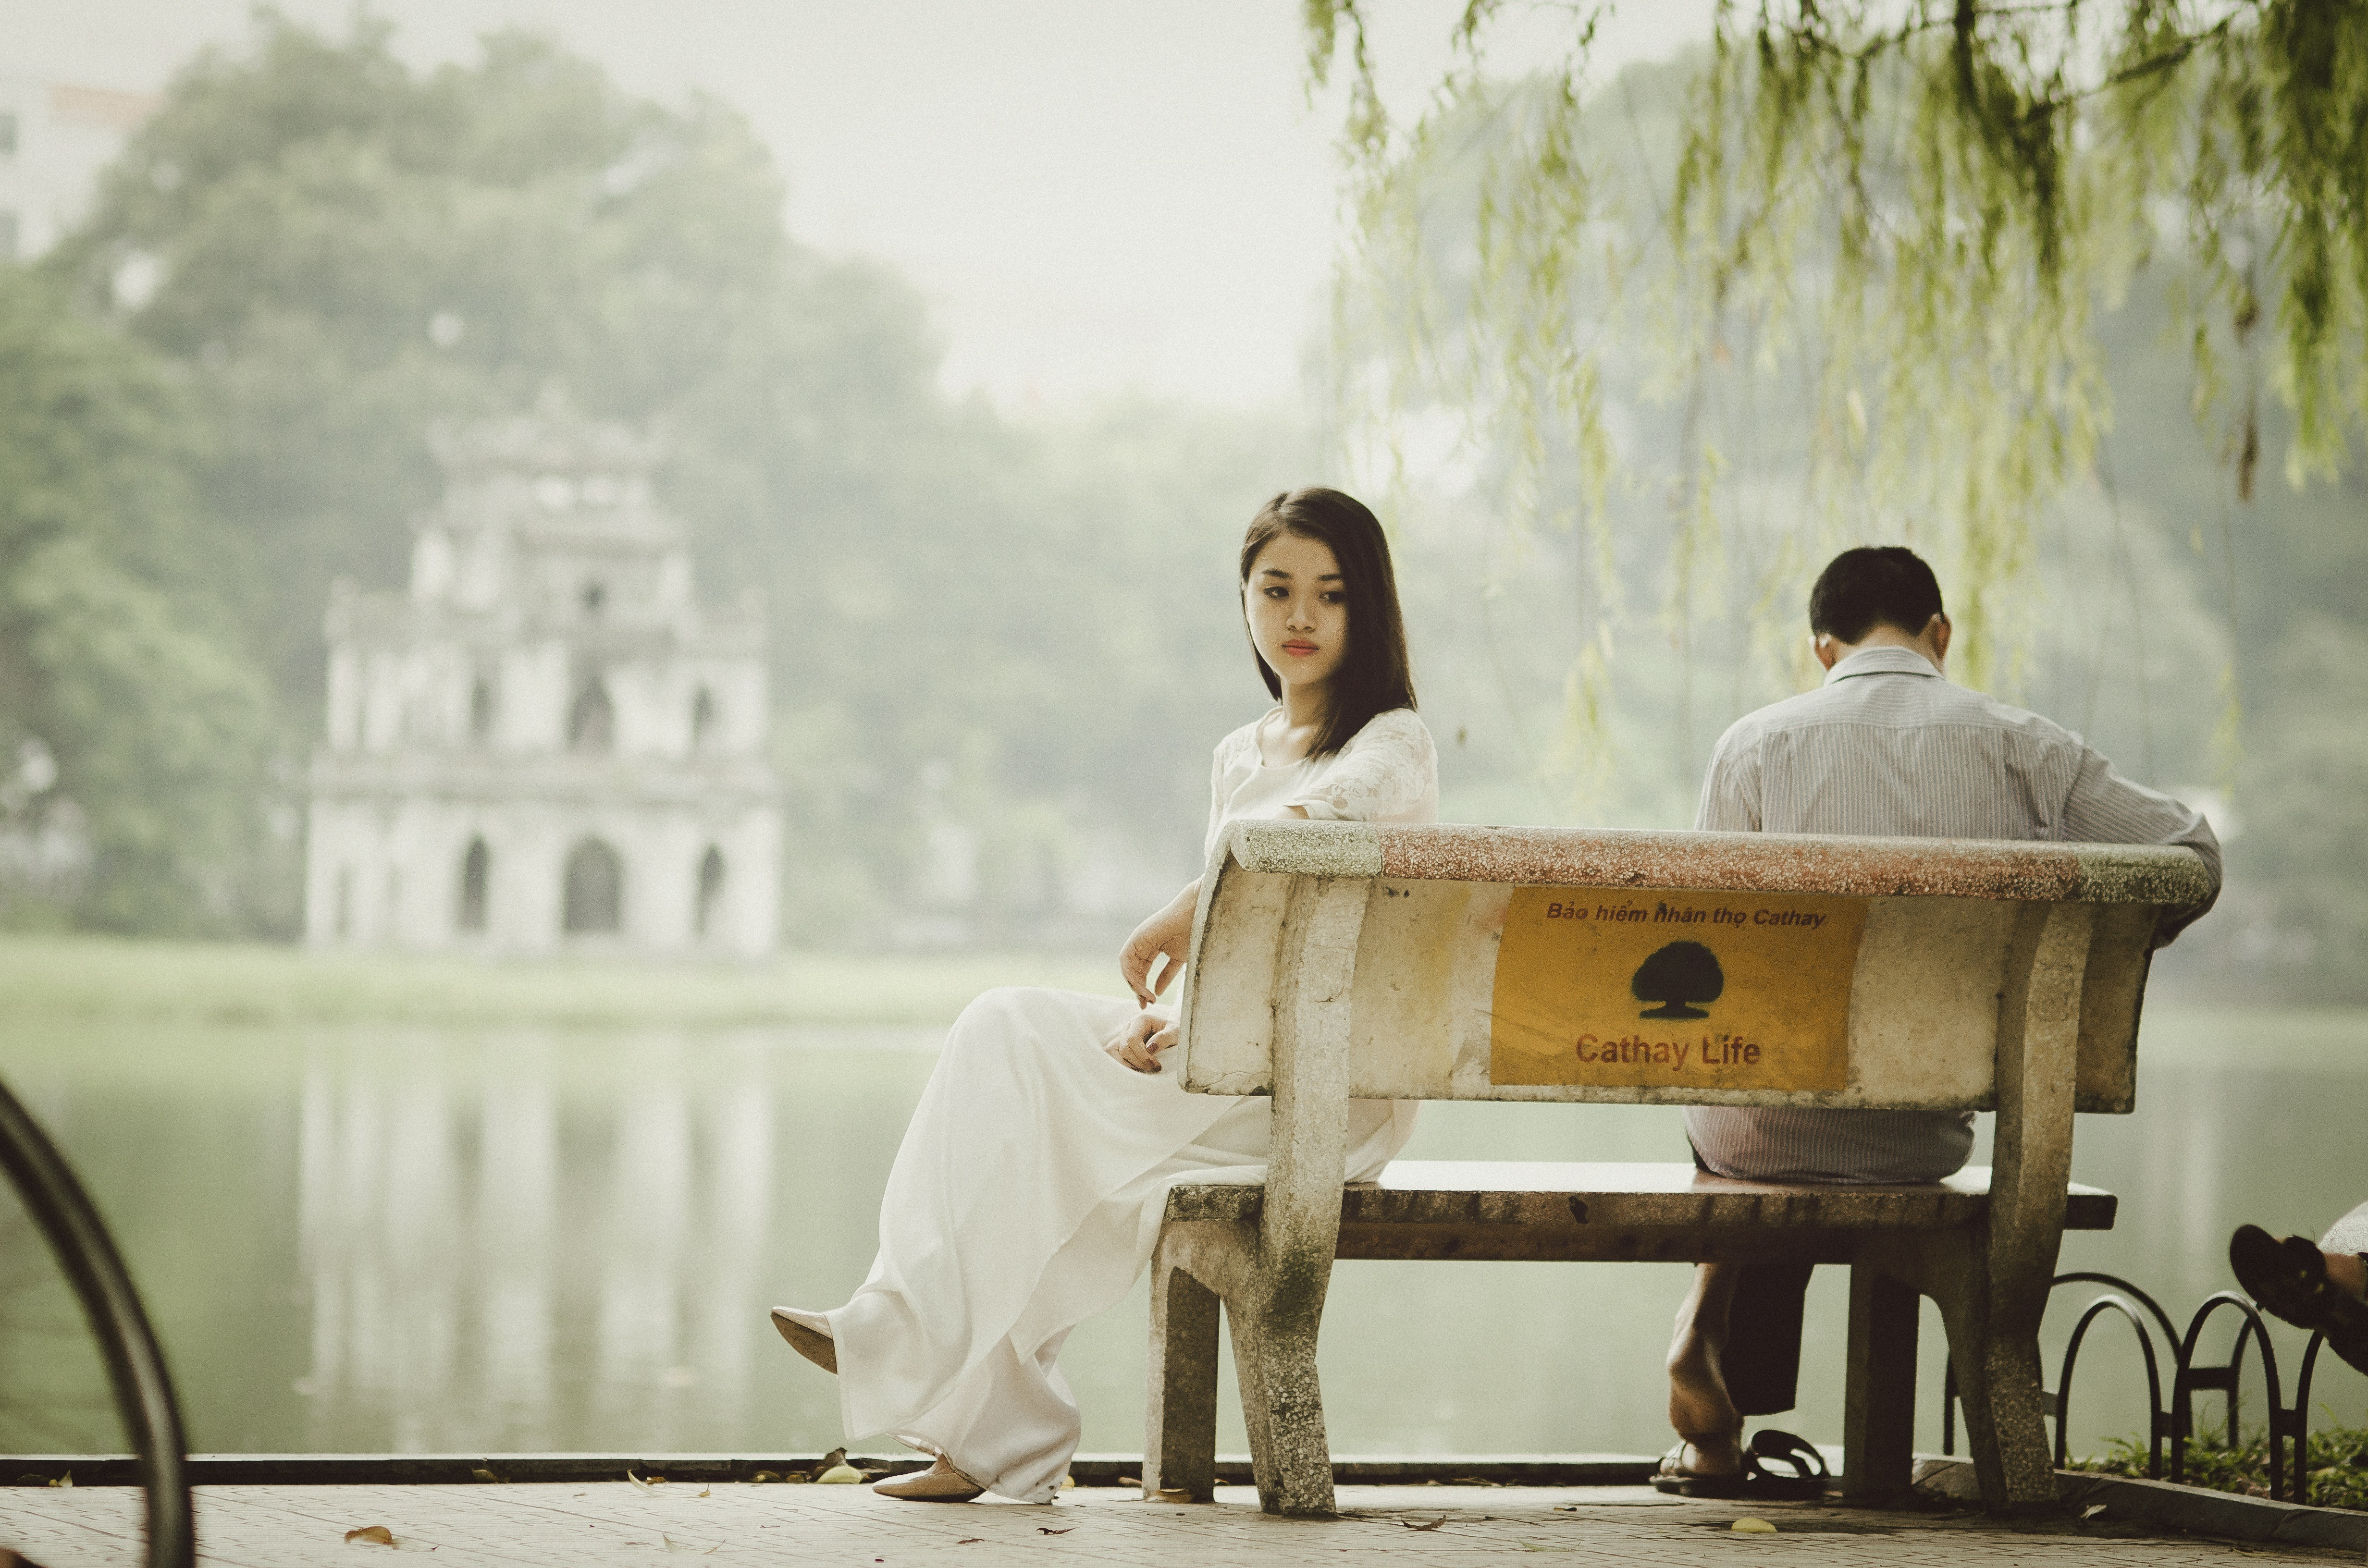 nature outdoor people girl woman bench 1335874 pxhere.com  Dry orgasm: when men orgasm without ejaculation